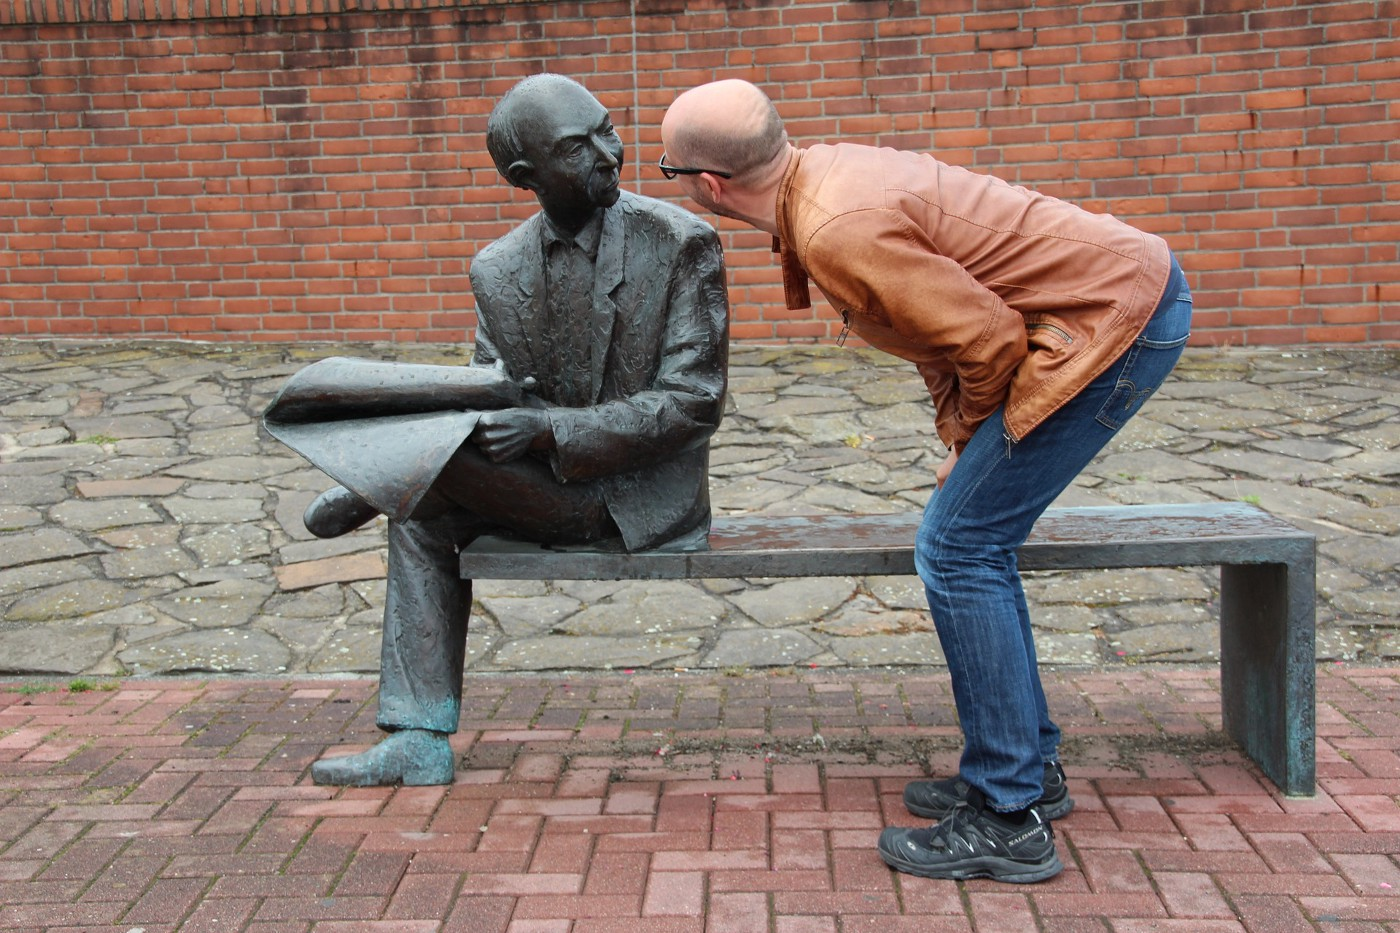 Man appearing to converse with a statue of a man.